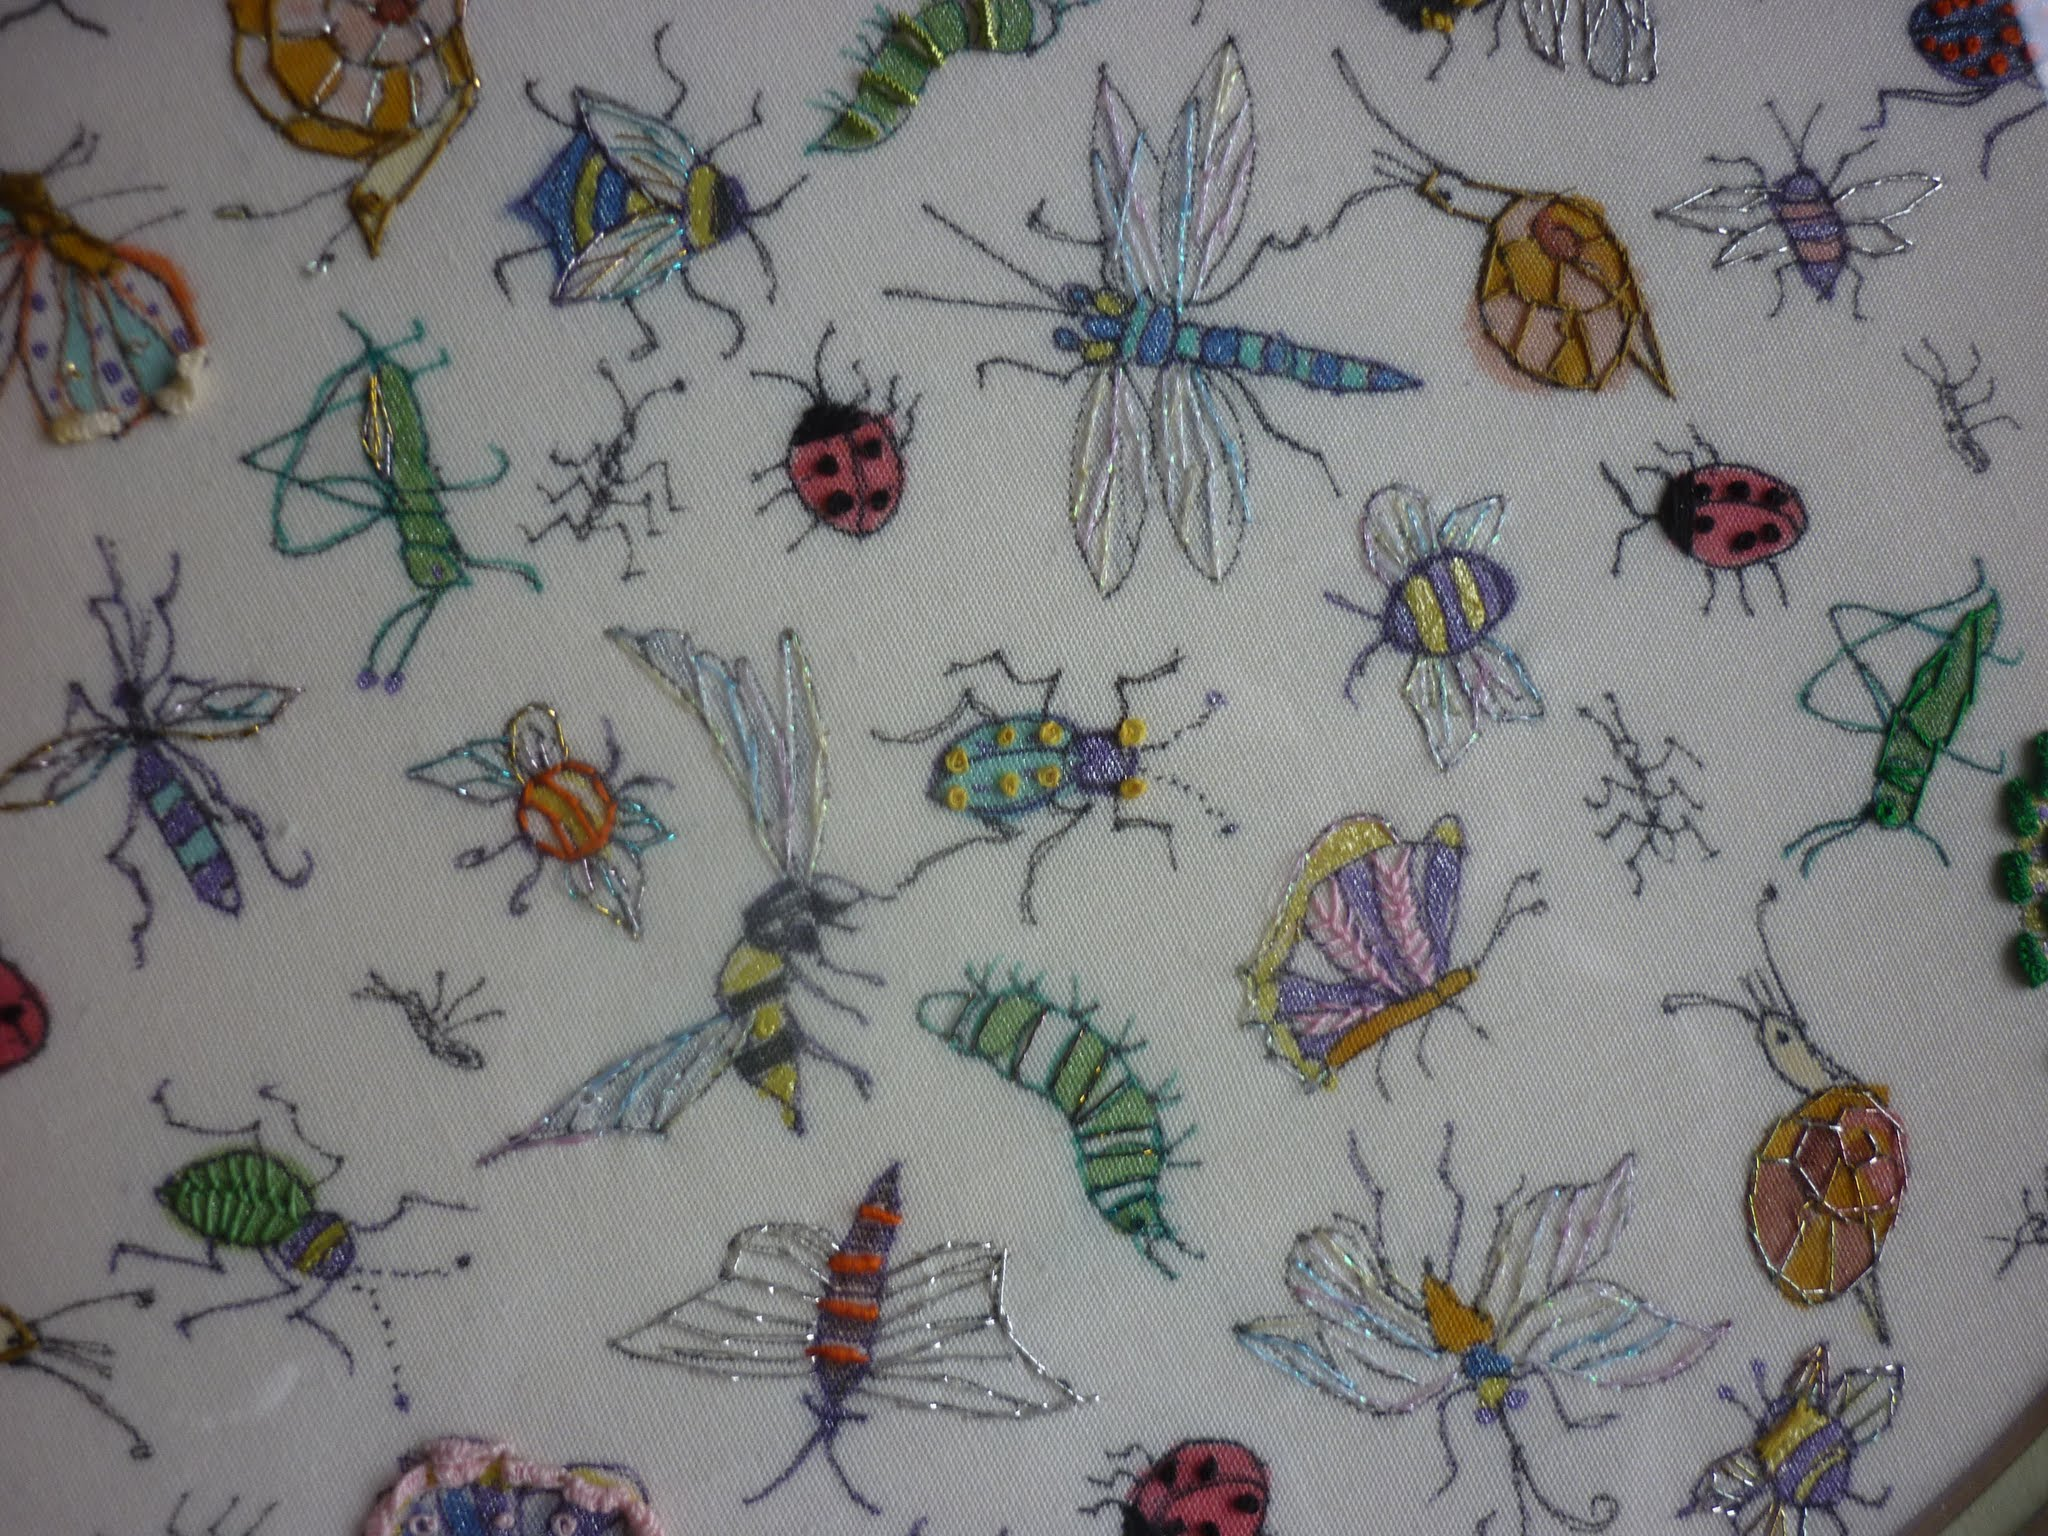 Hand Stitch a Natural Collection: Bugs and More - 2 Night : Trish Zachariah and Paula Bray